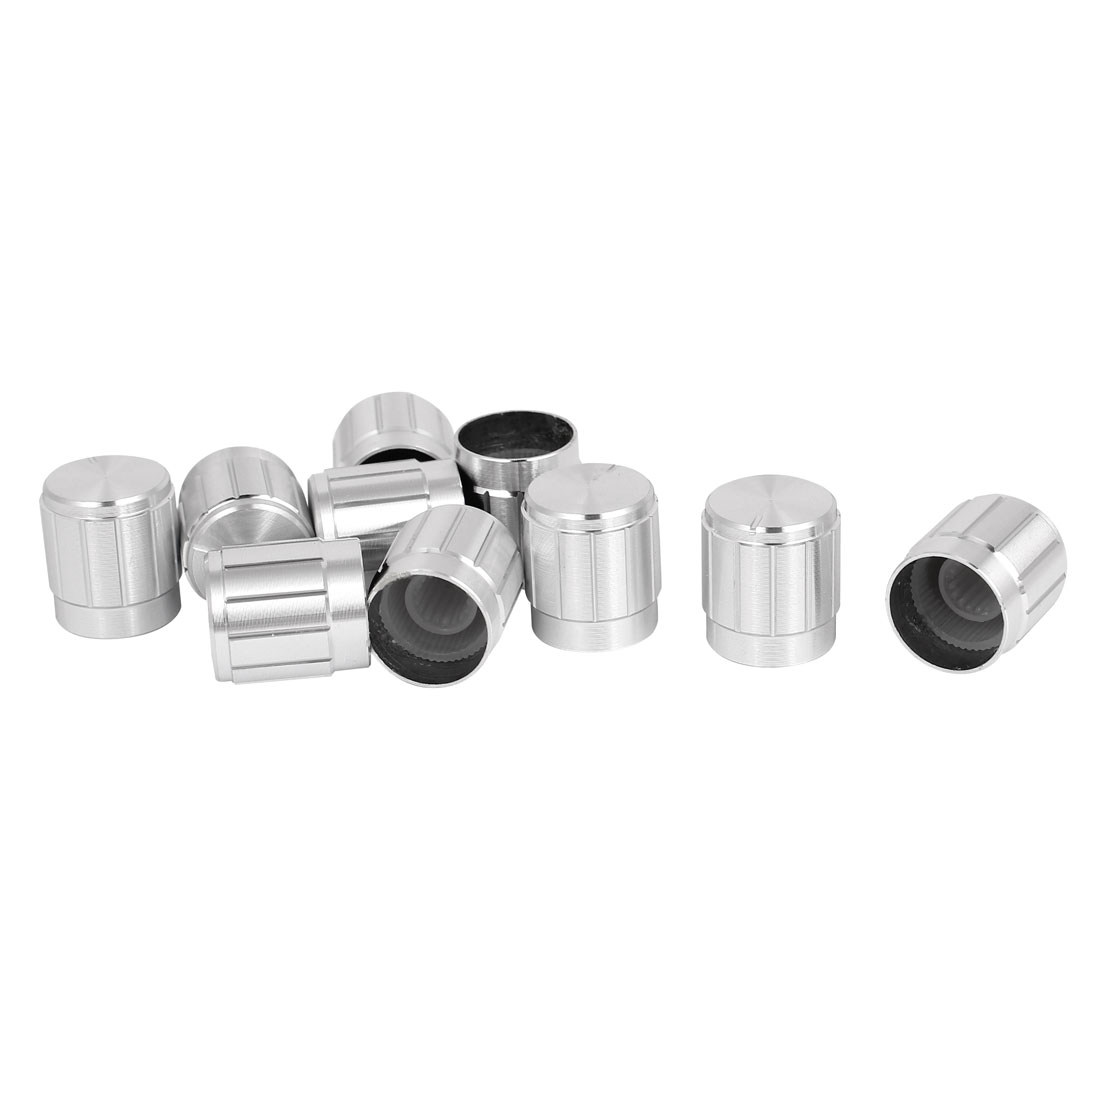 10pcs 15x16mm Silver Tone Aluminum Alloy Rotary Potentiometer Knobs Cap